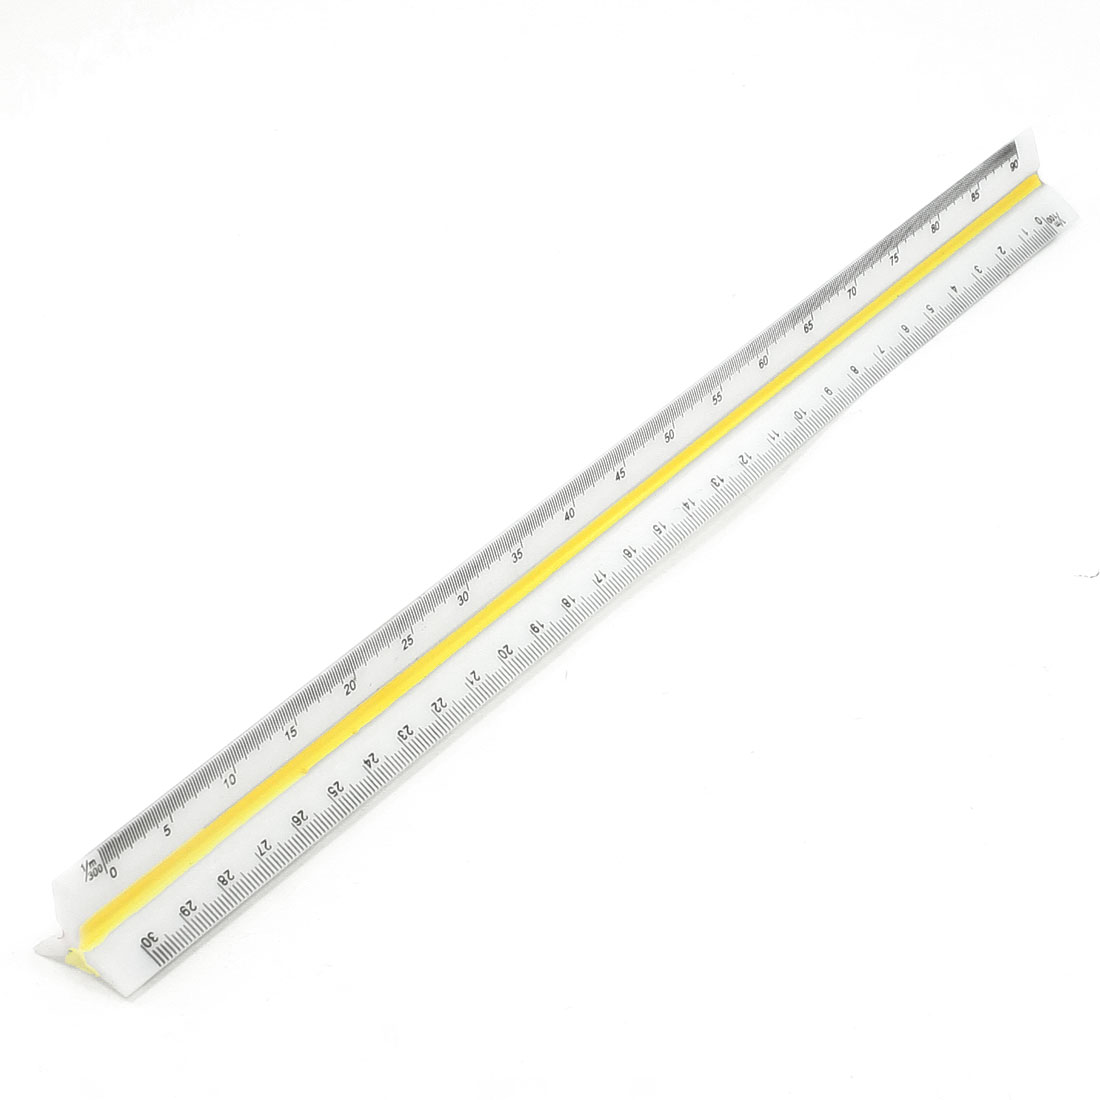 32.2cm Long Architect Triangular Scale Ruler 1:100 1:200 1:250 1:300